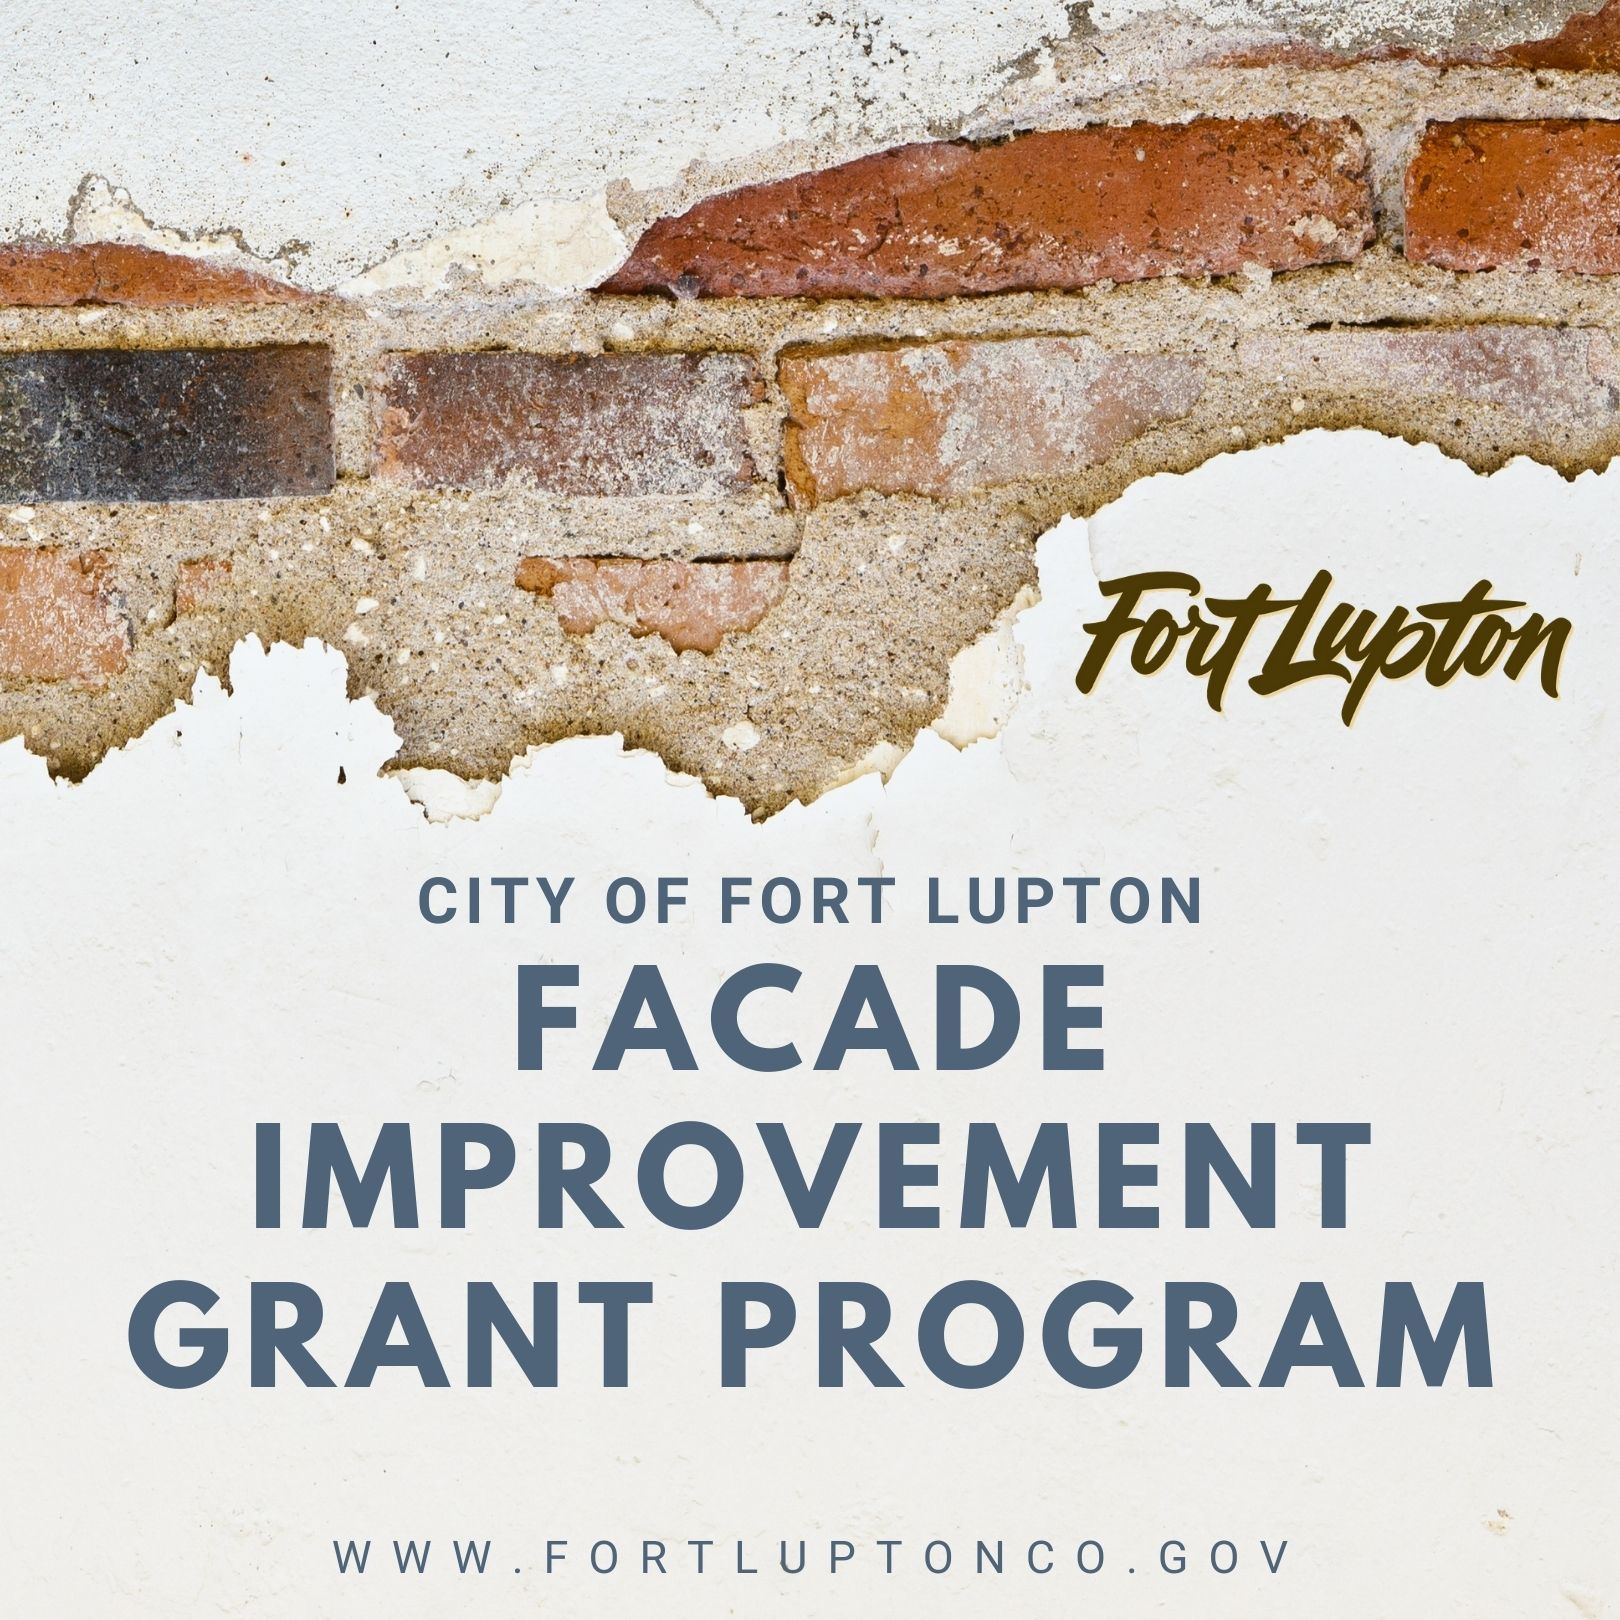 Facade Improvement Program